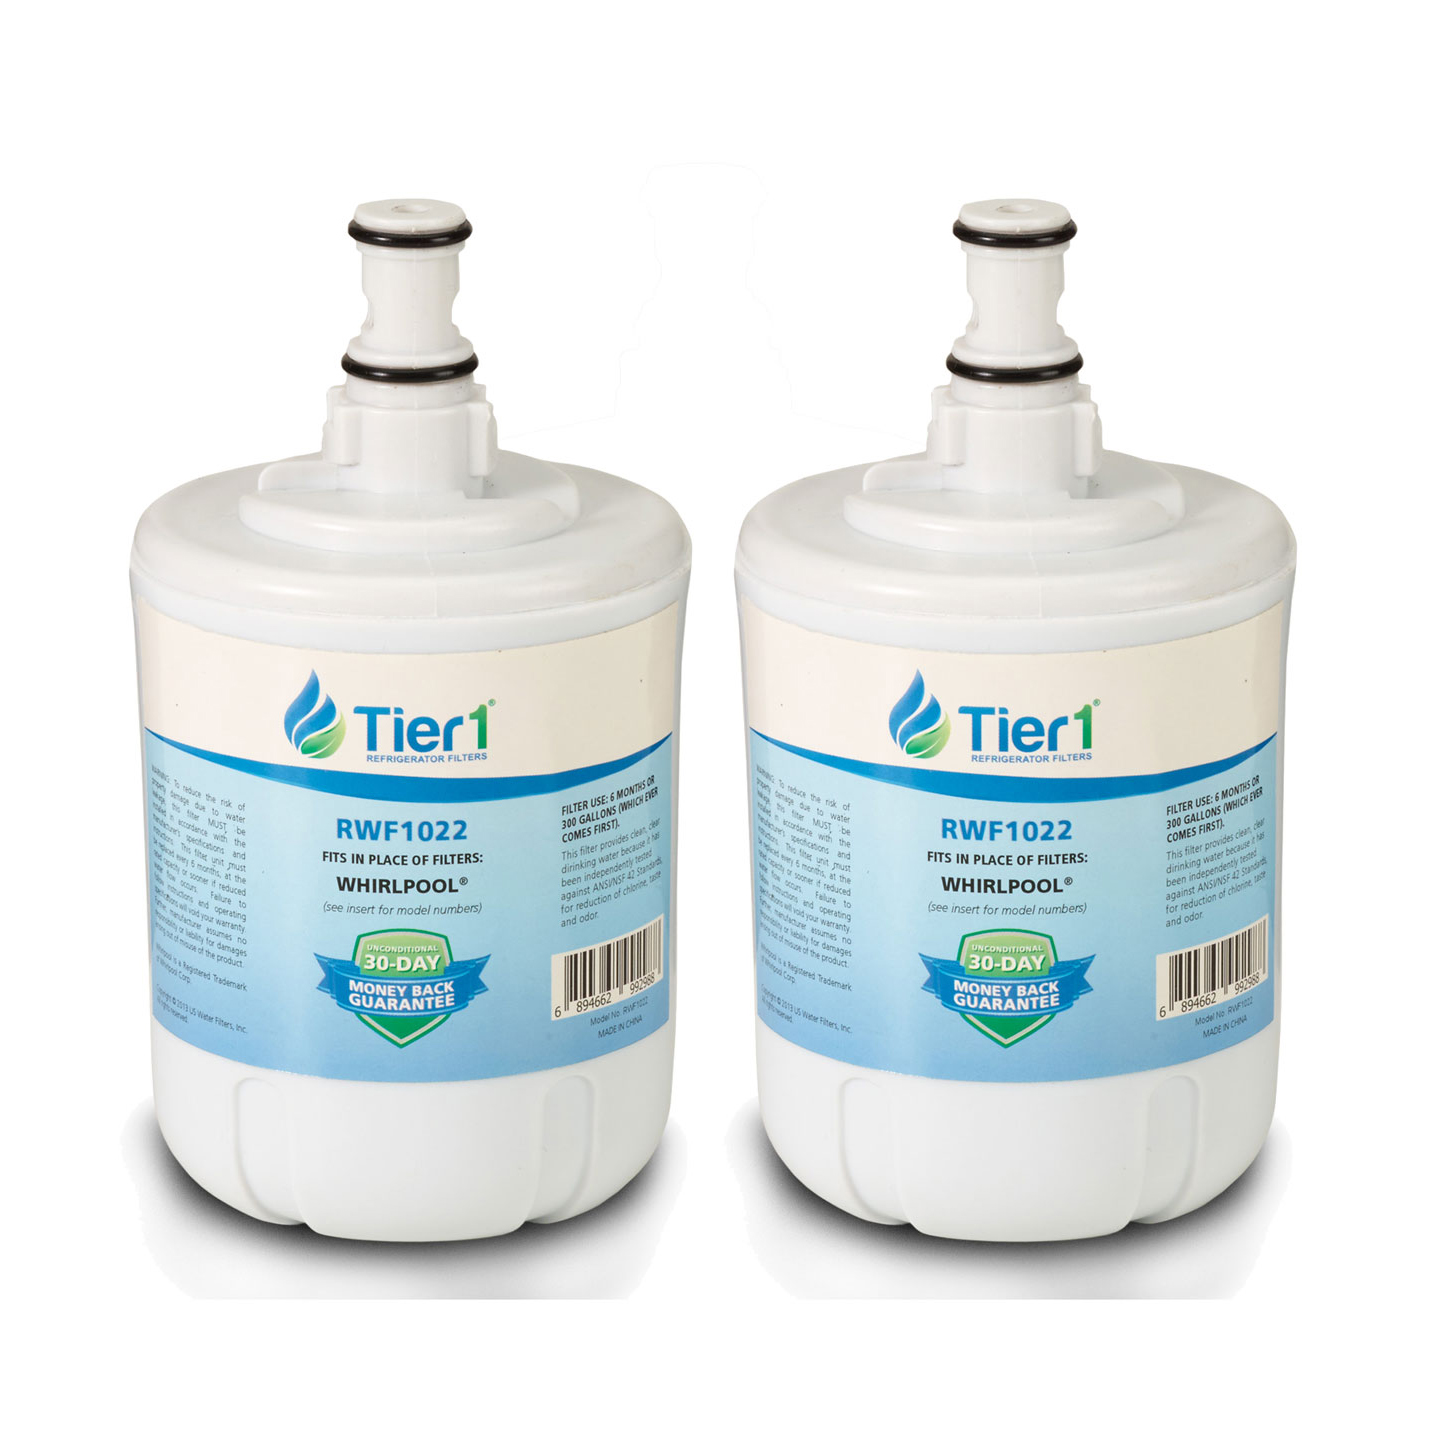 8171413/8171414 Whirlpool Comparable Refrigerator Water Filter Replacement By Tier1 (2 Pack) TIER1_RWF1022_2_PACK